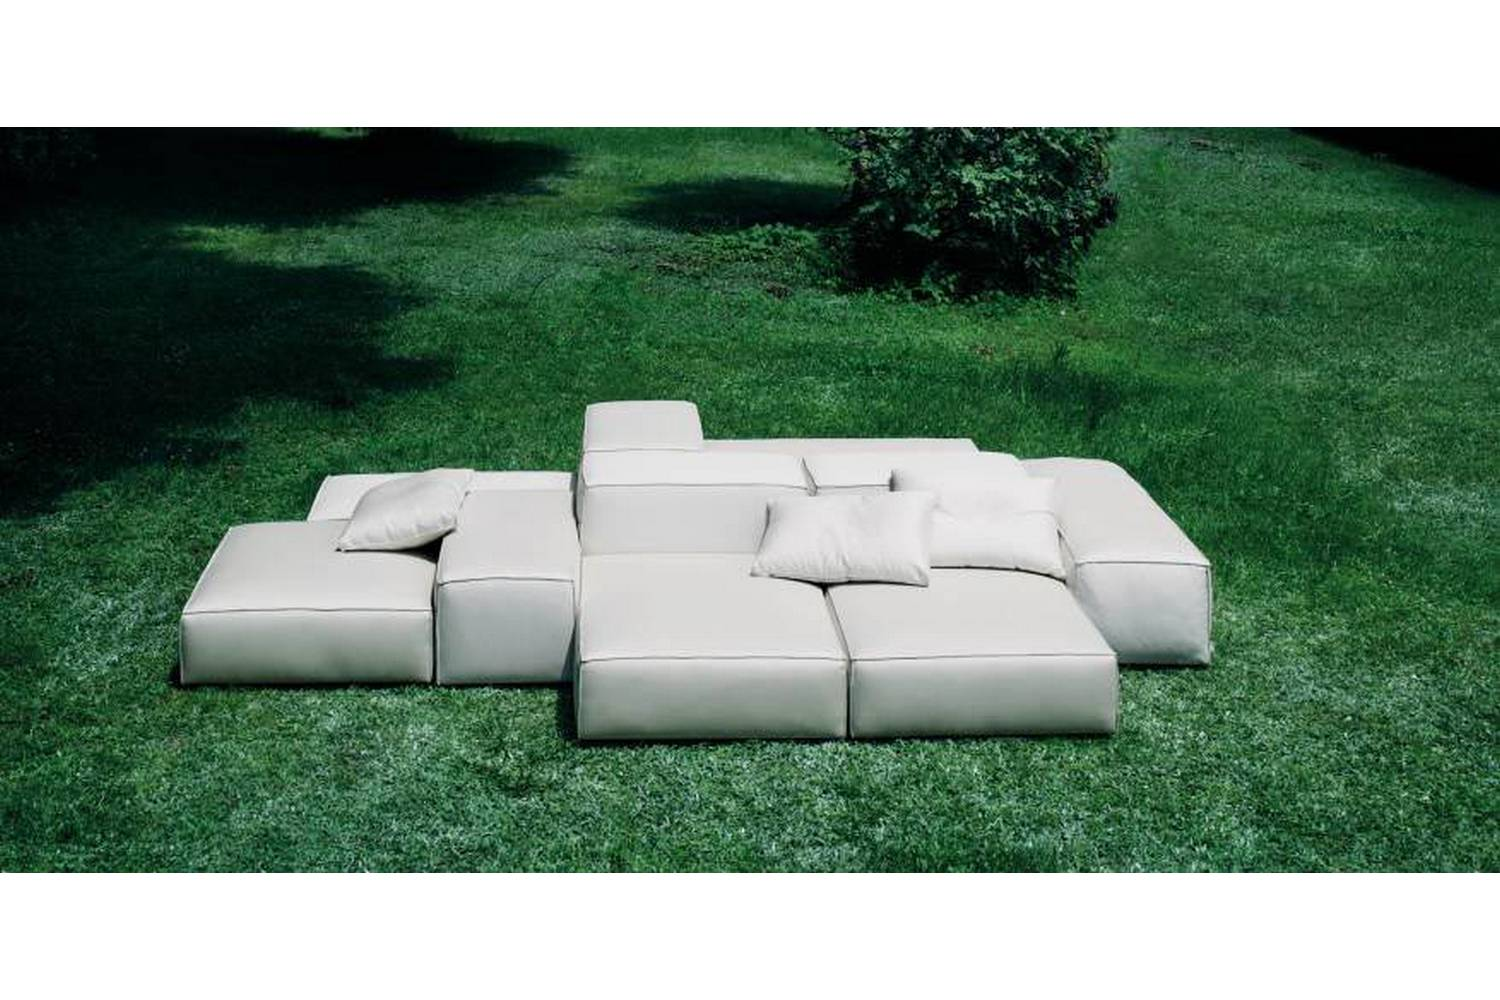 Living Divani Sofa Price Extrasoft Sofa By Piero Lissoni For Living Divani Space Furniture